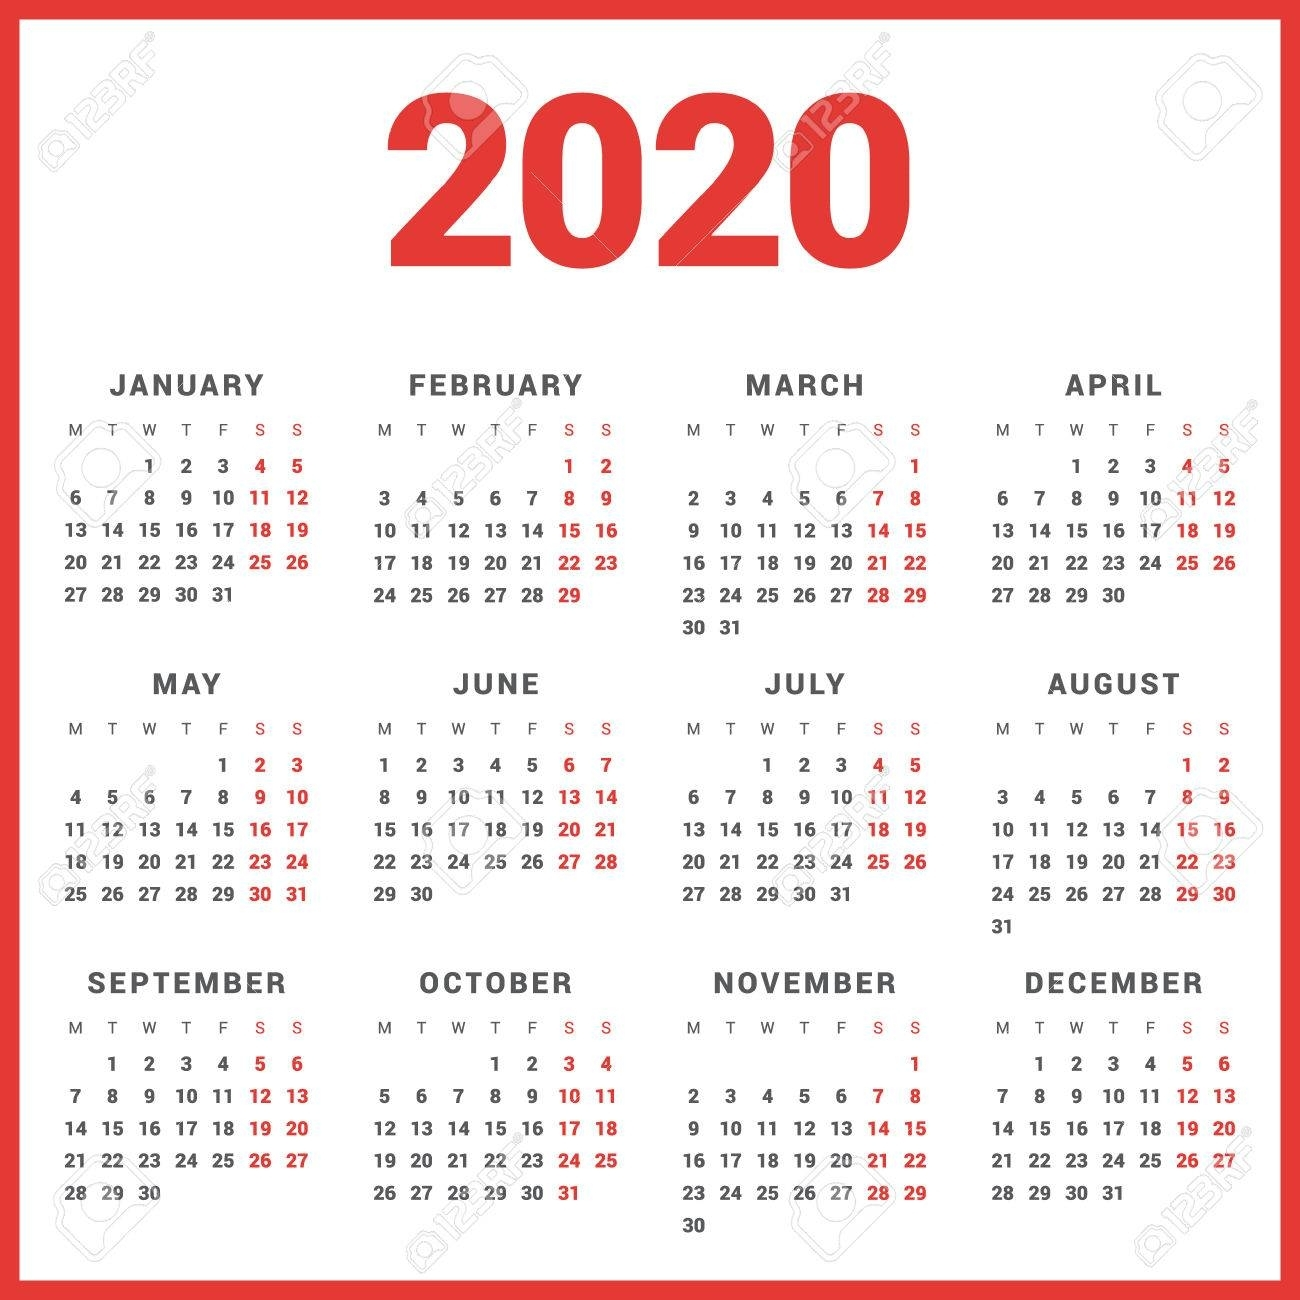 Calendar For 2020 Year On White Background. Week Starts Monday in 2020 Calendar Starting With Monday